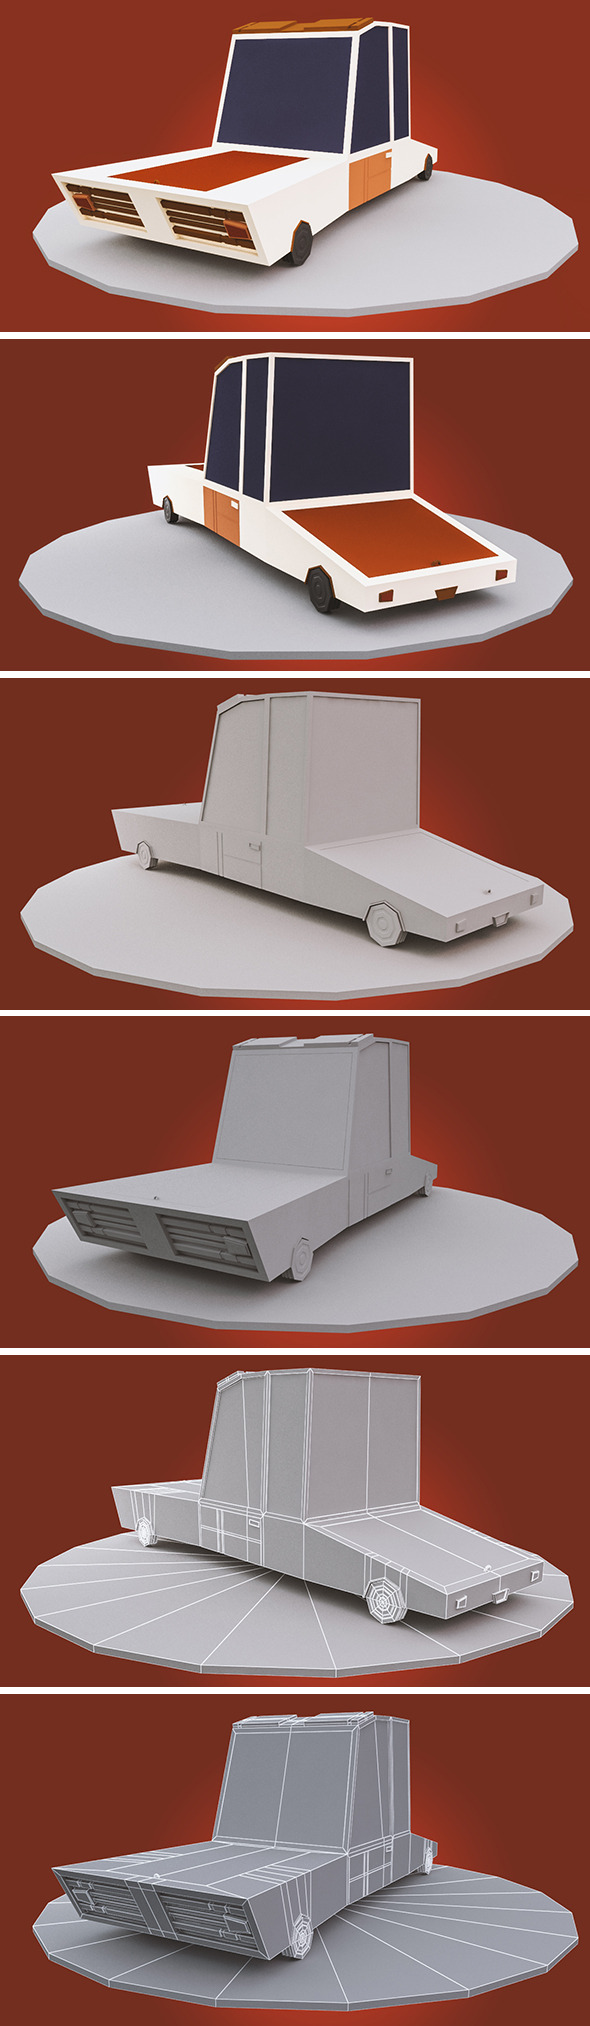 low poly cartoon car - 3DOcean Item for Sale